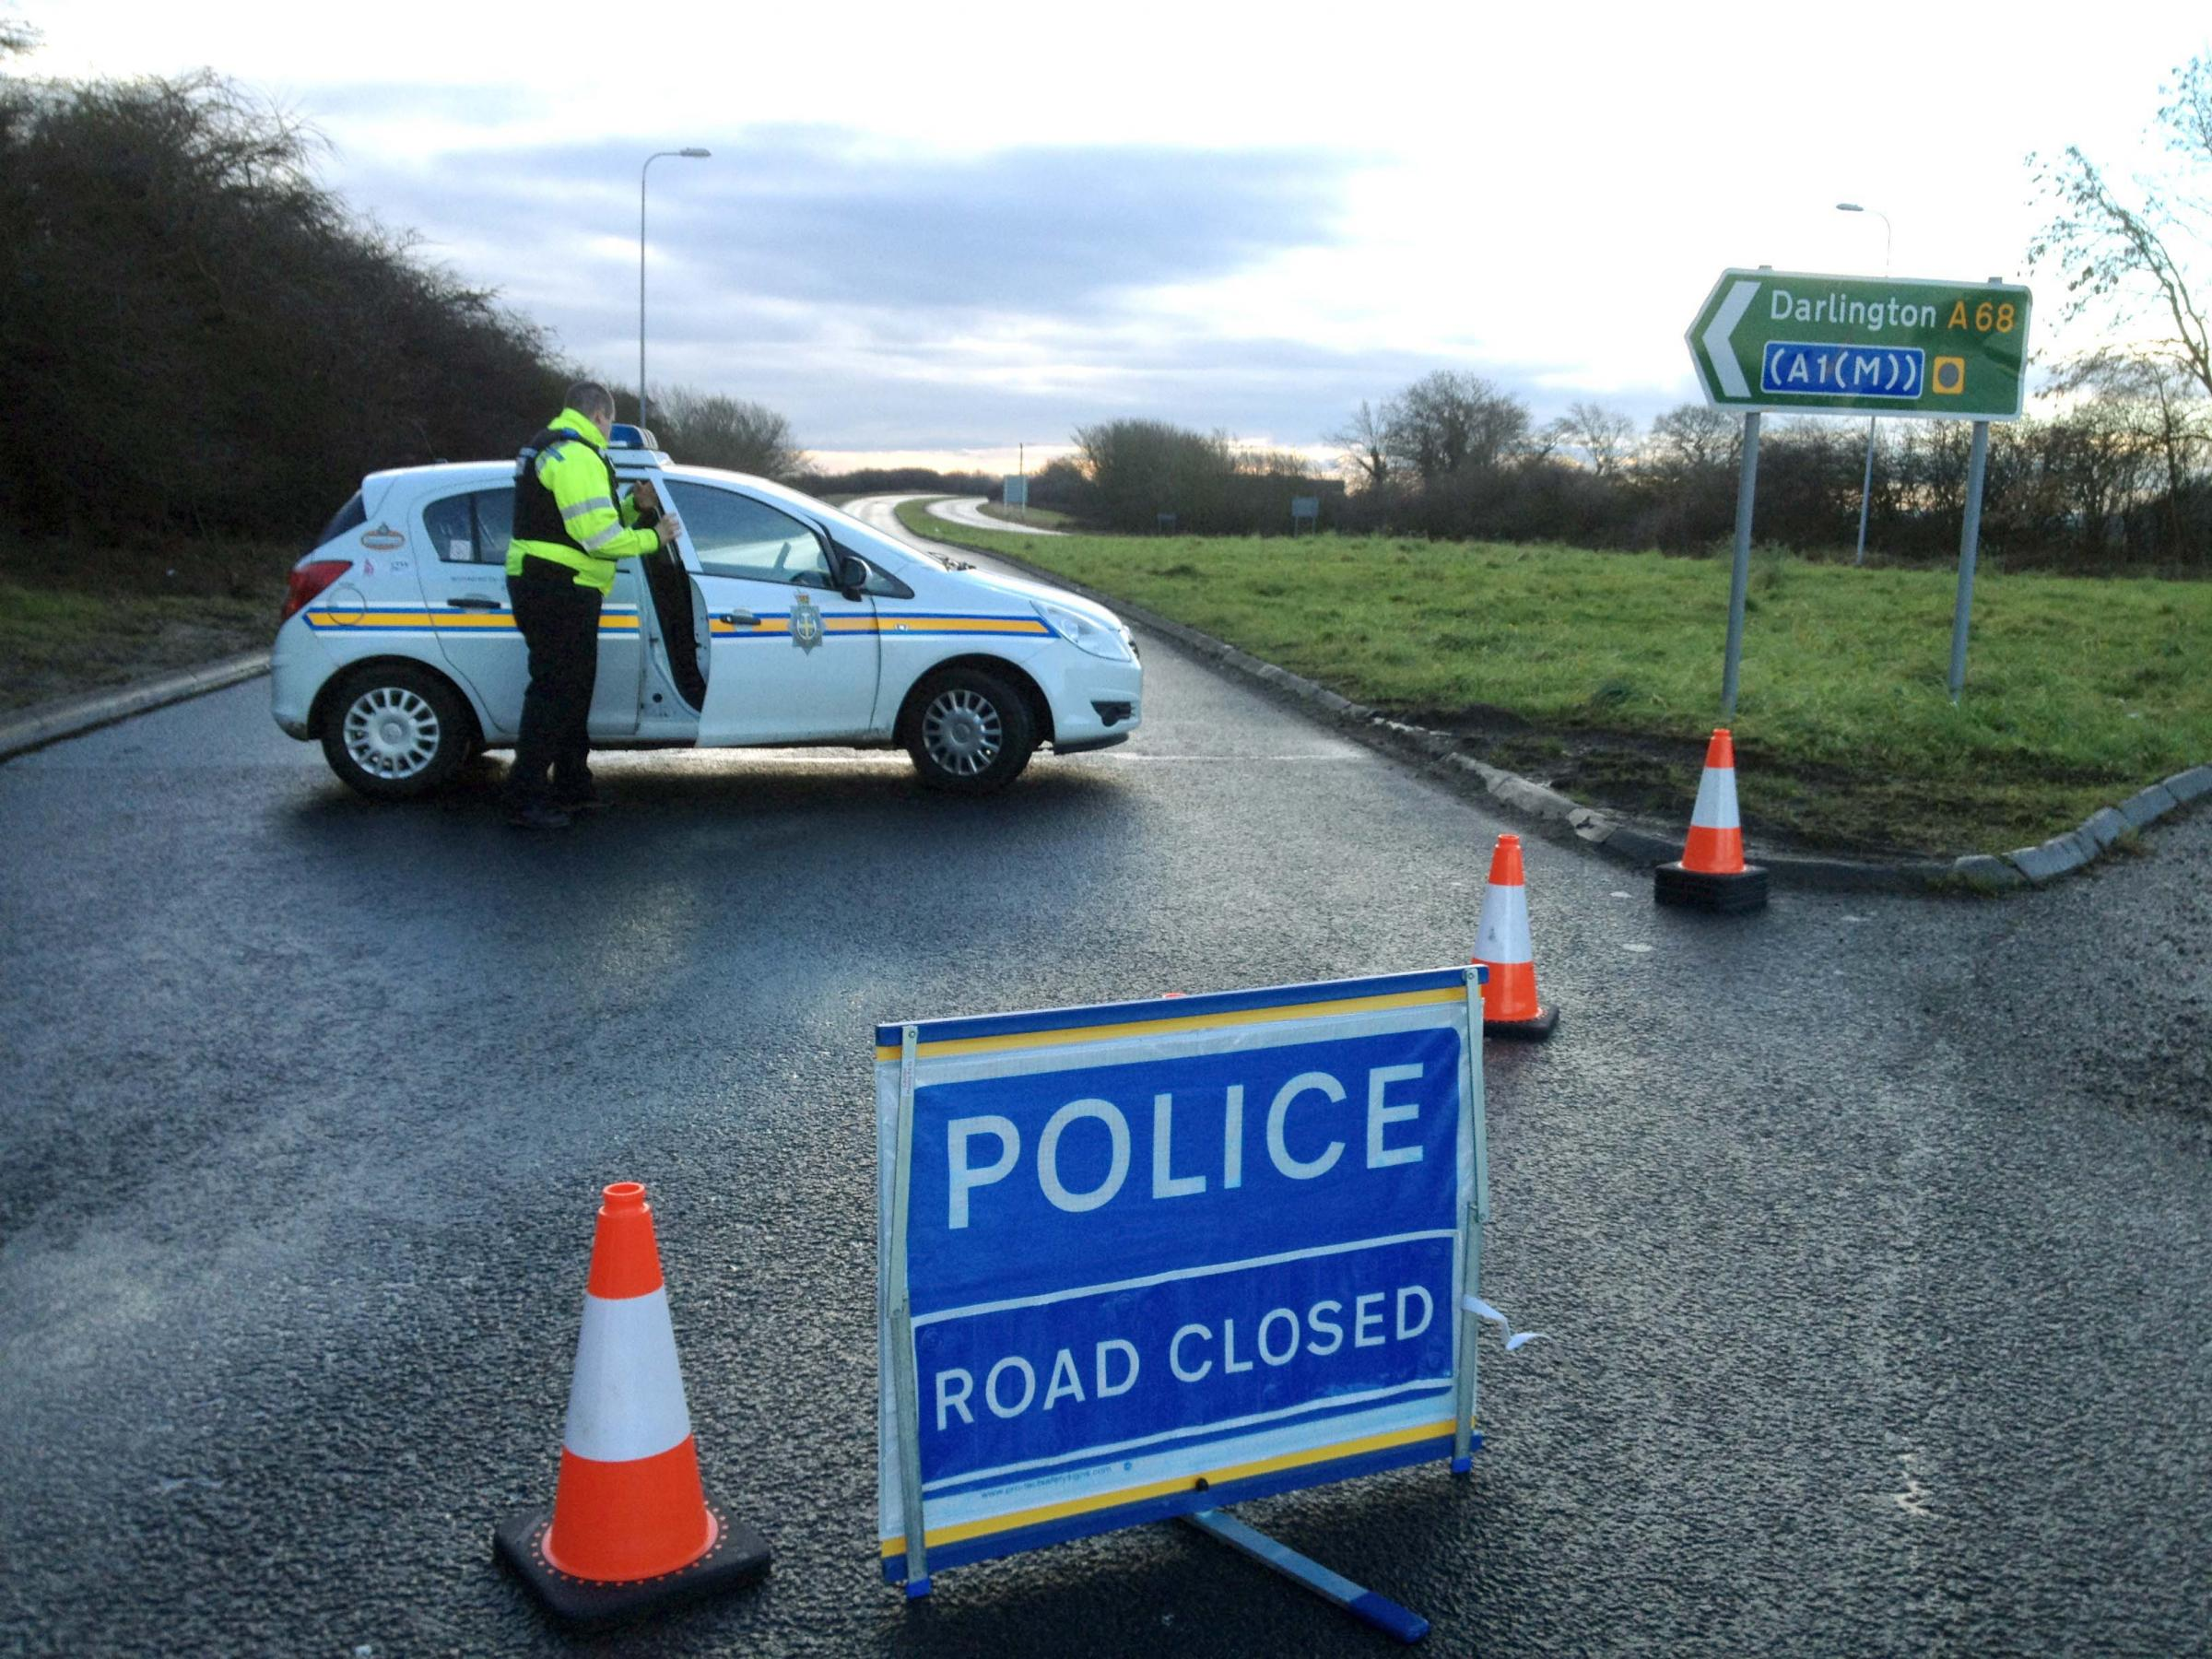 THE A68 was closed at Burtree Gate near Darlington this morning after the fatal accident. It has now reopened.